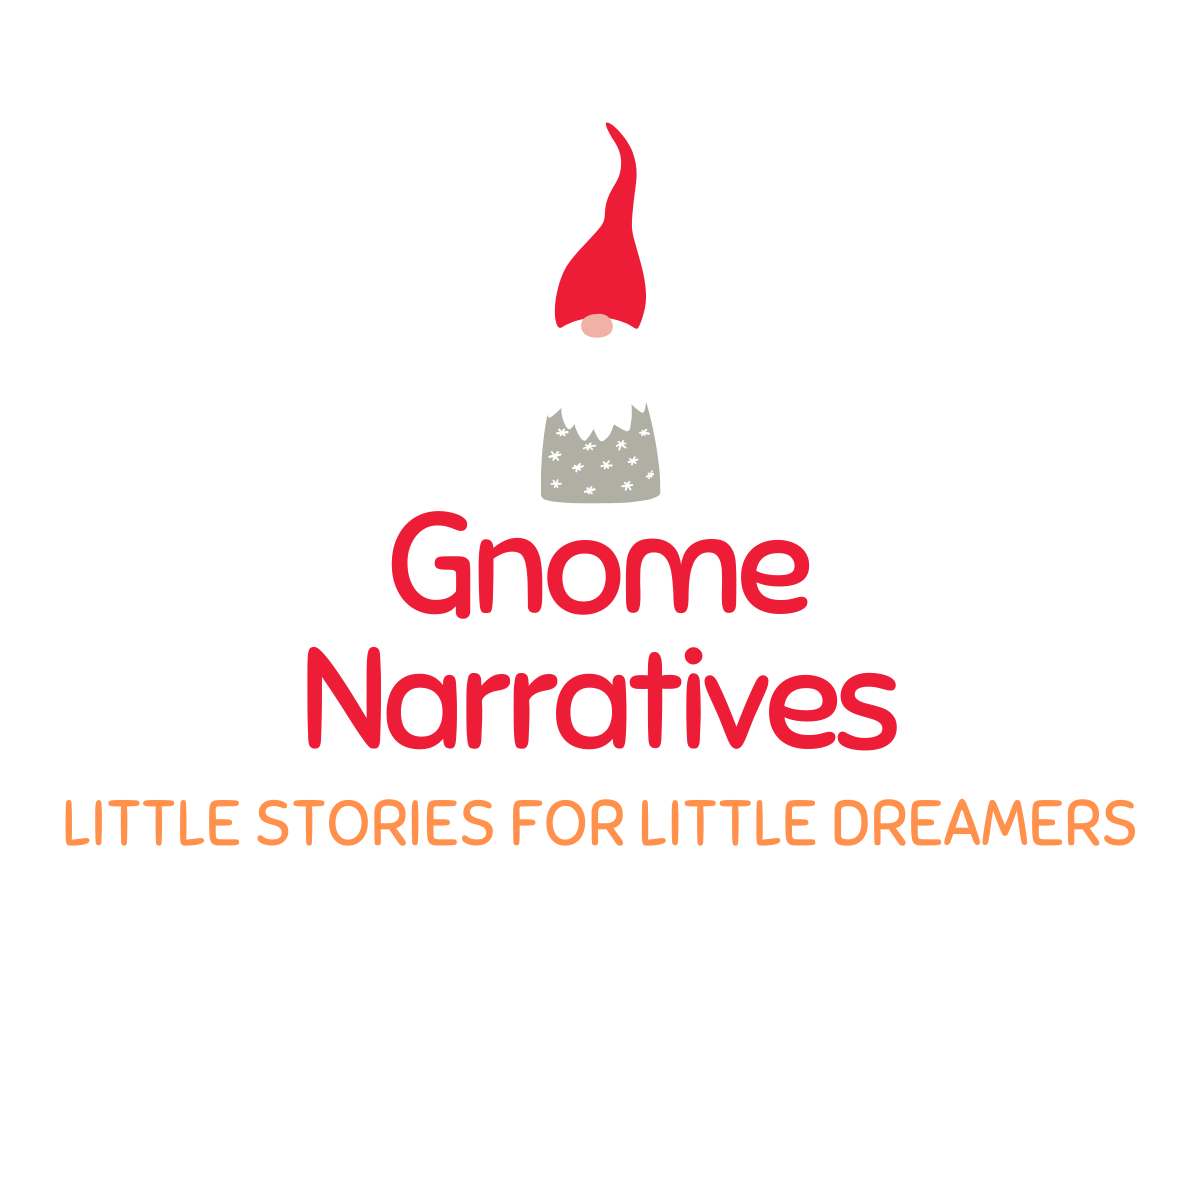 Gnome Narratives